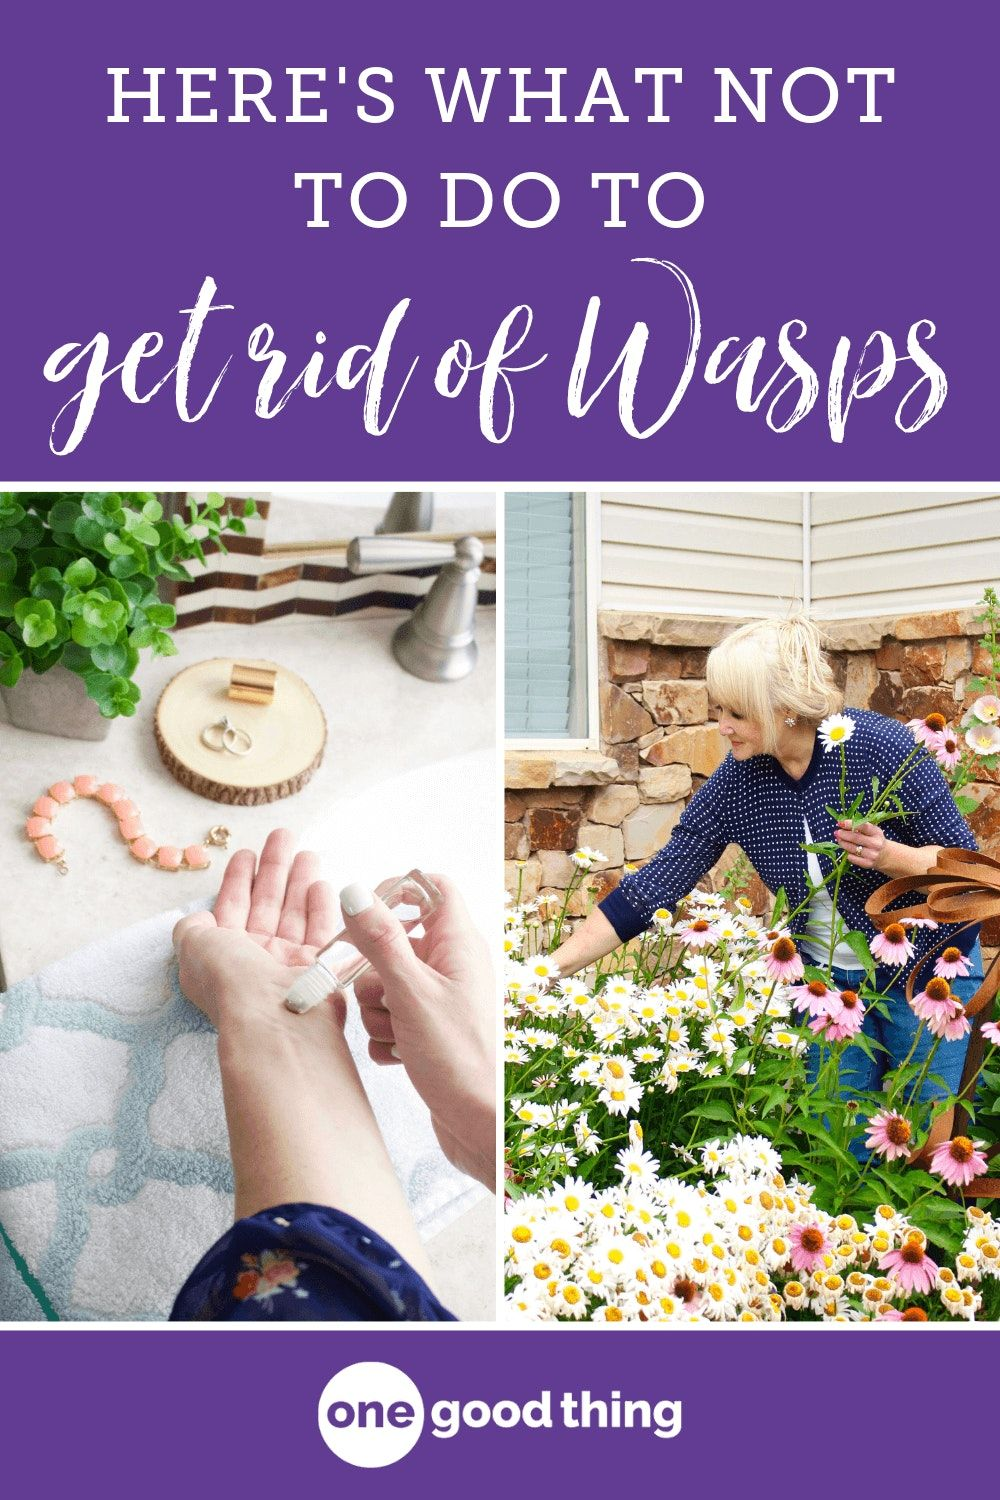 how to deter wasps from deck